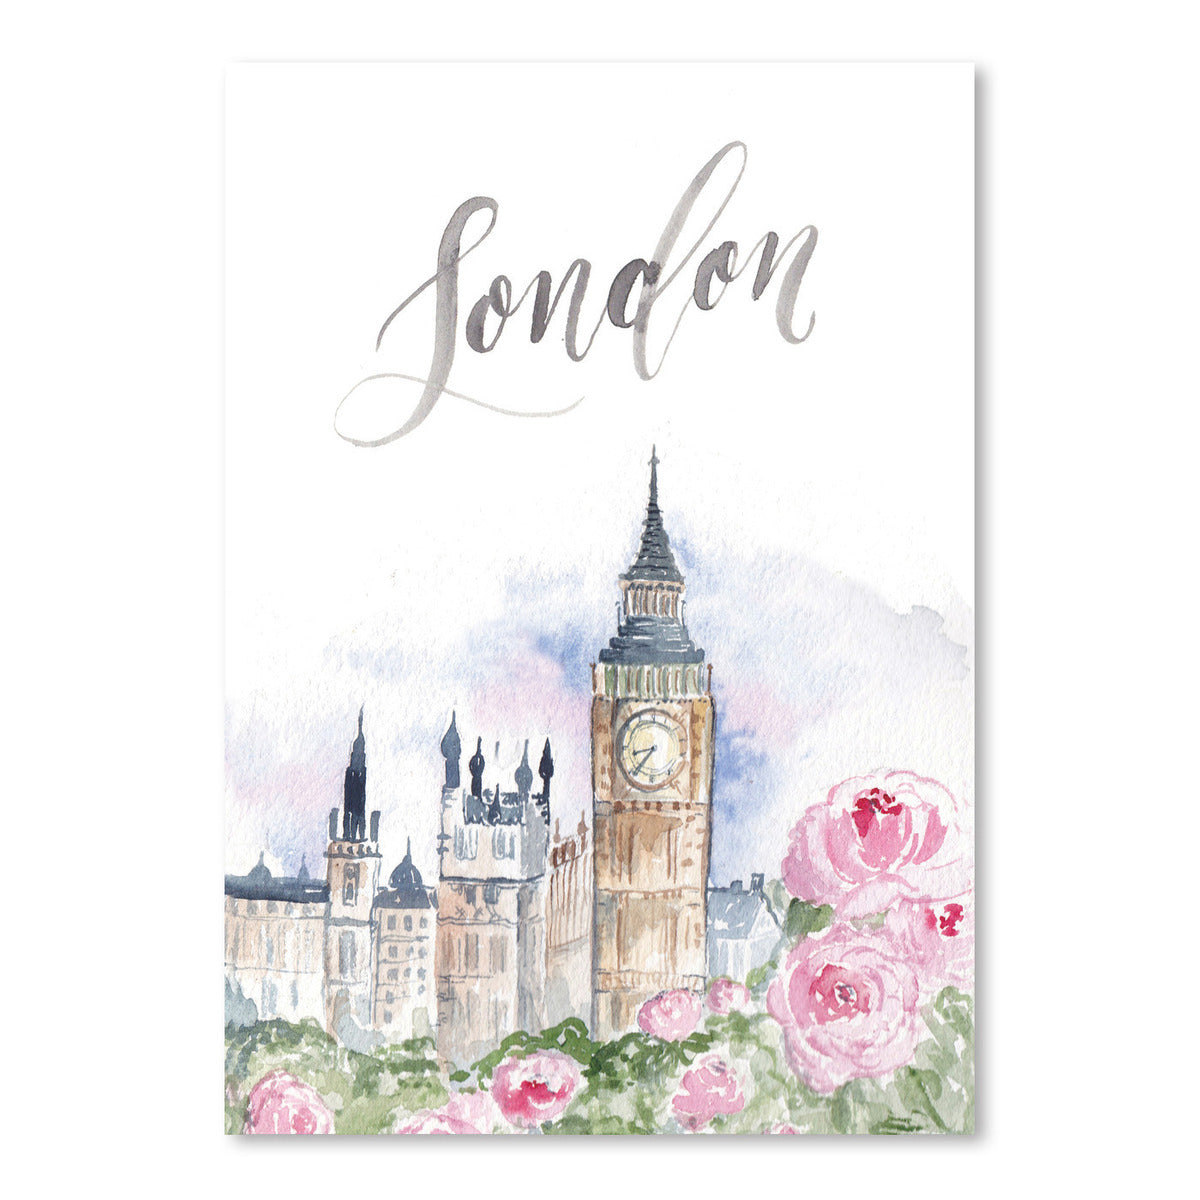 London by Cami Monet - Art Print - Americanflat